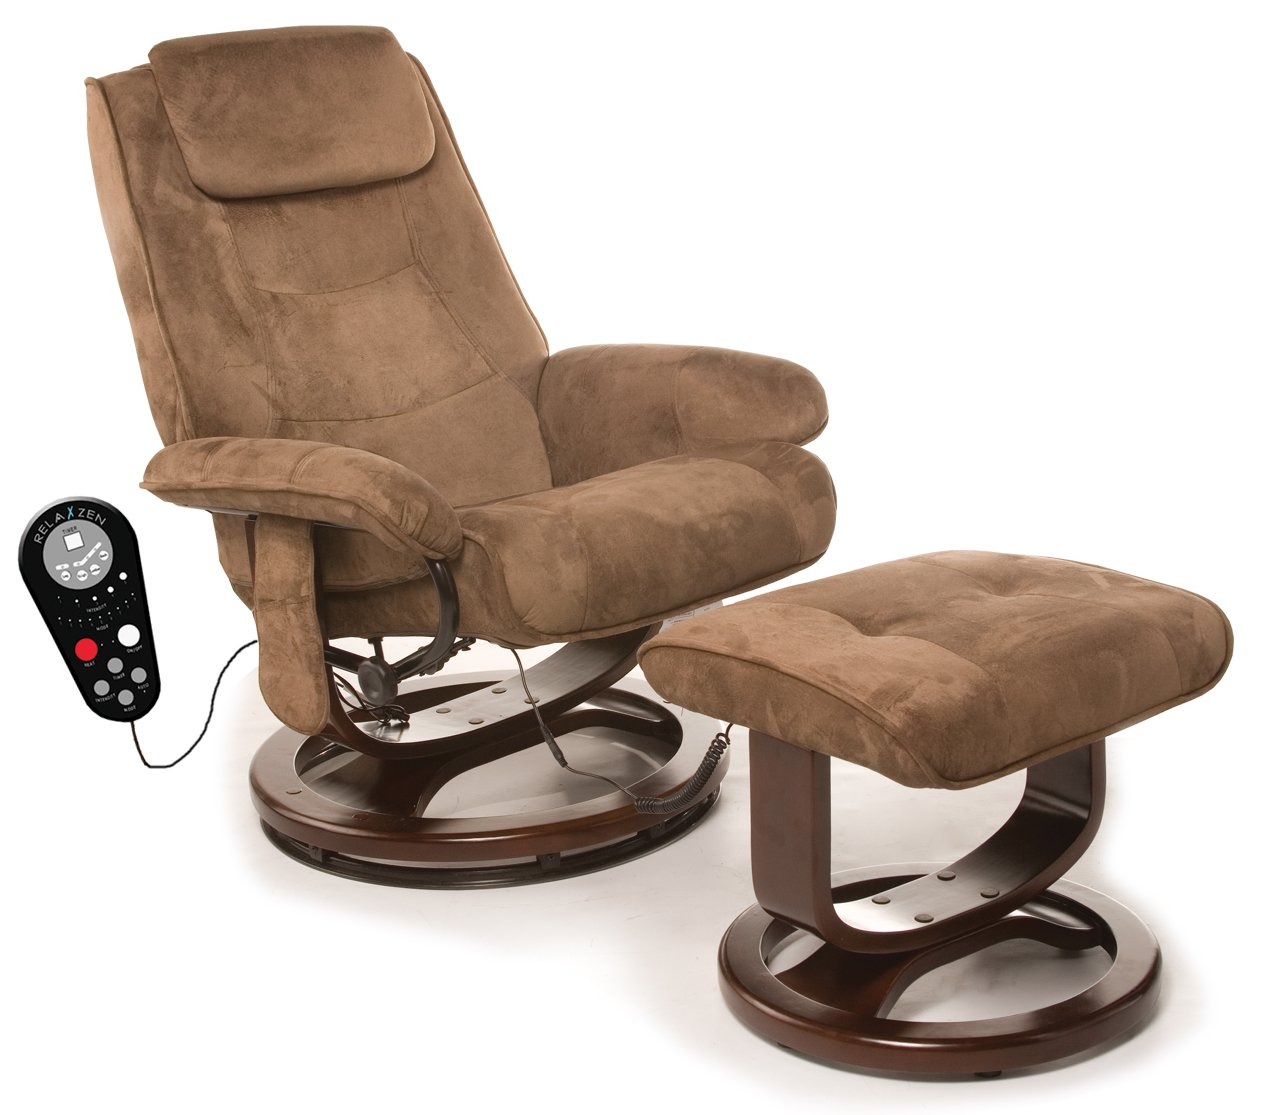 Amazon.com: Recliners - Chairs: Home & Kitchen